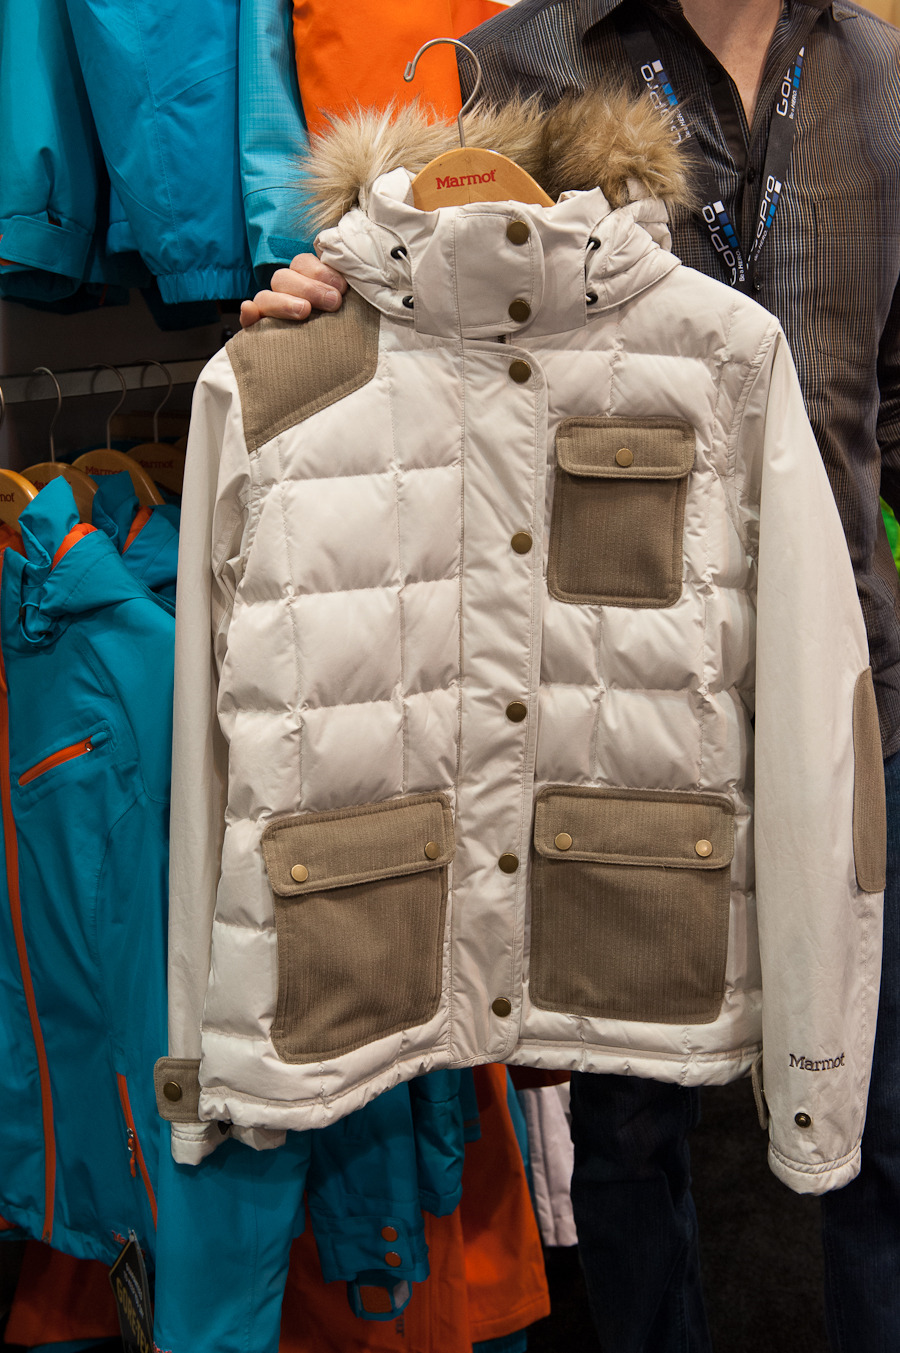 Marmot's Fab down jacket is complete with 650 fill down and pockets that have corduroy-like fabric for added comfort. It also comes with a faux fur collar and removable hood.  - ©Ashleigh Miller Photography